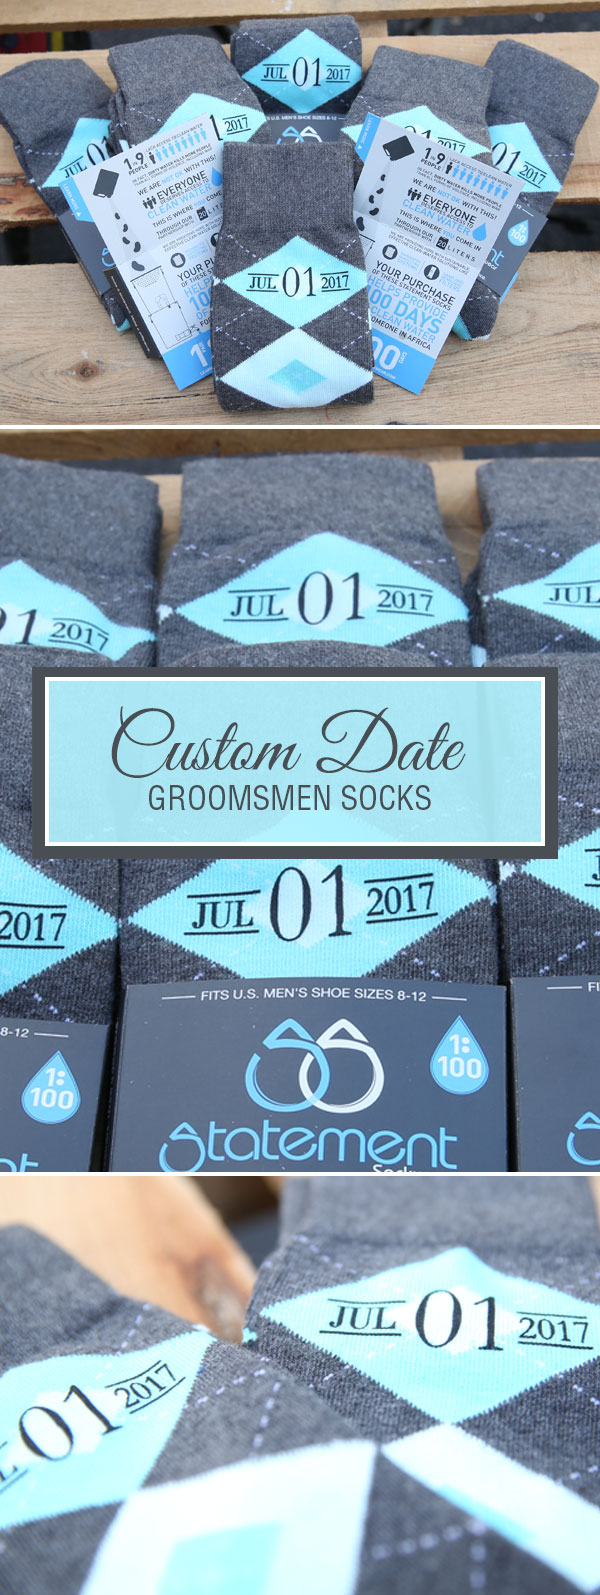 Turquoise Pool and Gray Argyle Customized Date Groomsmen Dress Socks